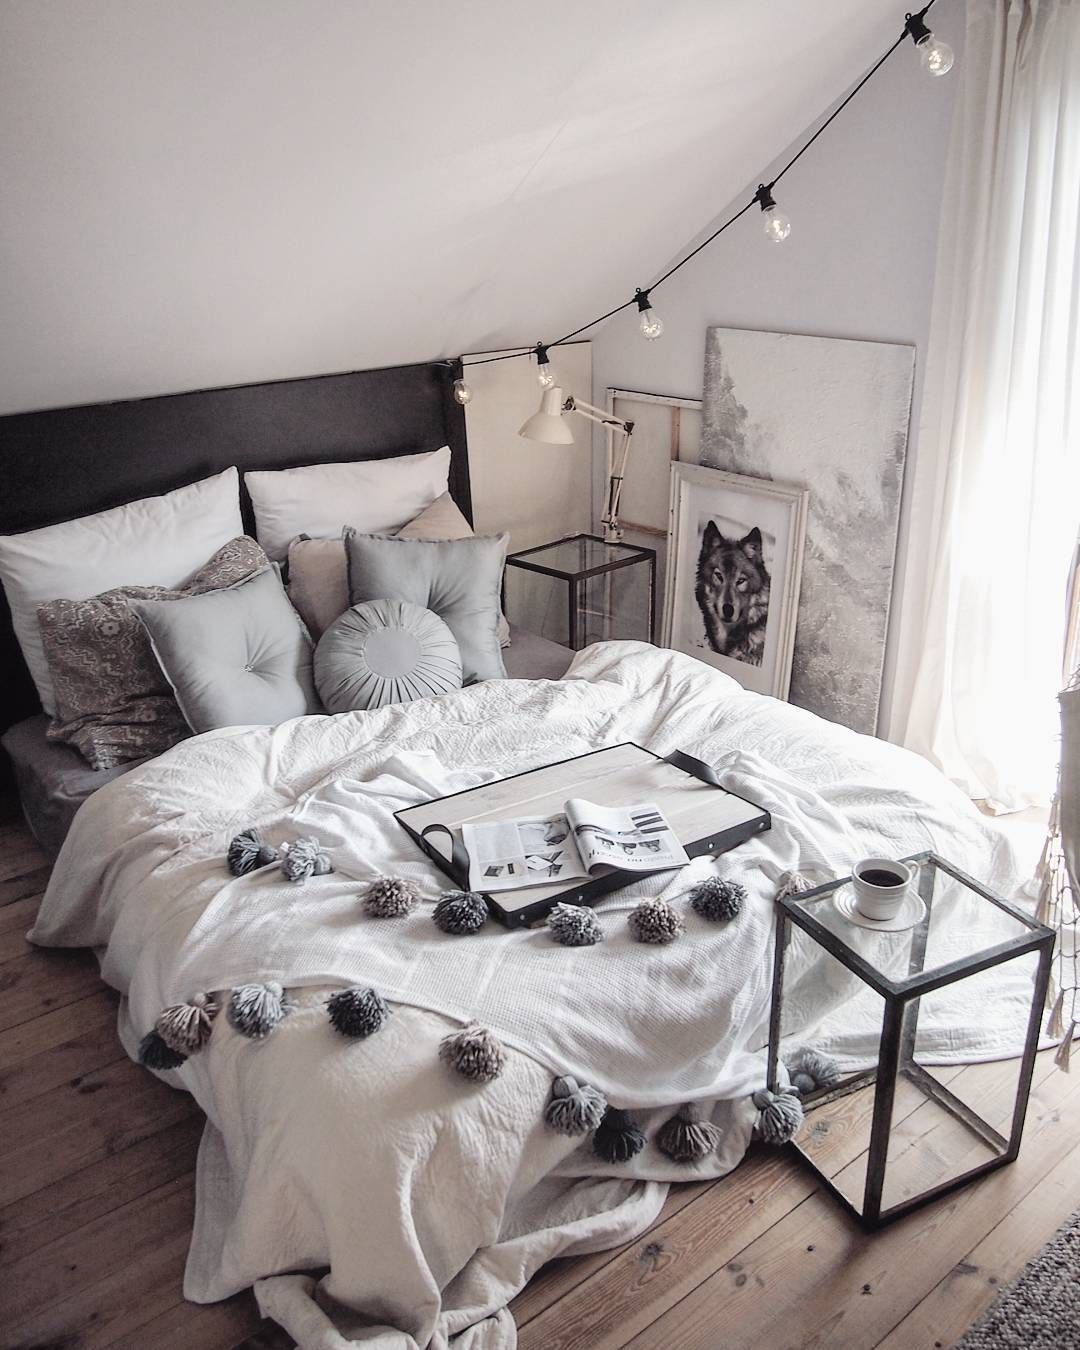 Schlafzimmer Inspiration Instagram Like Cover Like Cover Sieh Dir Dieses Instagram Foto